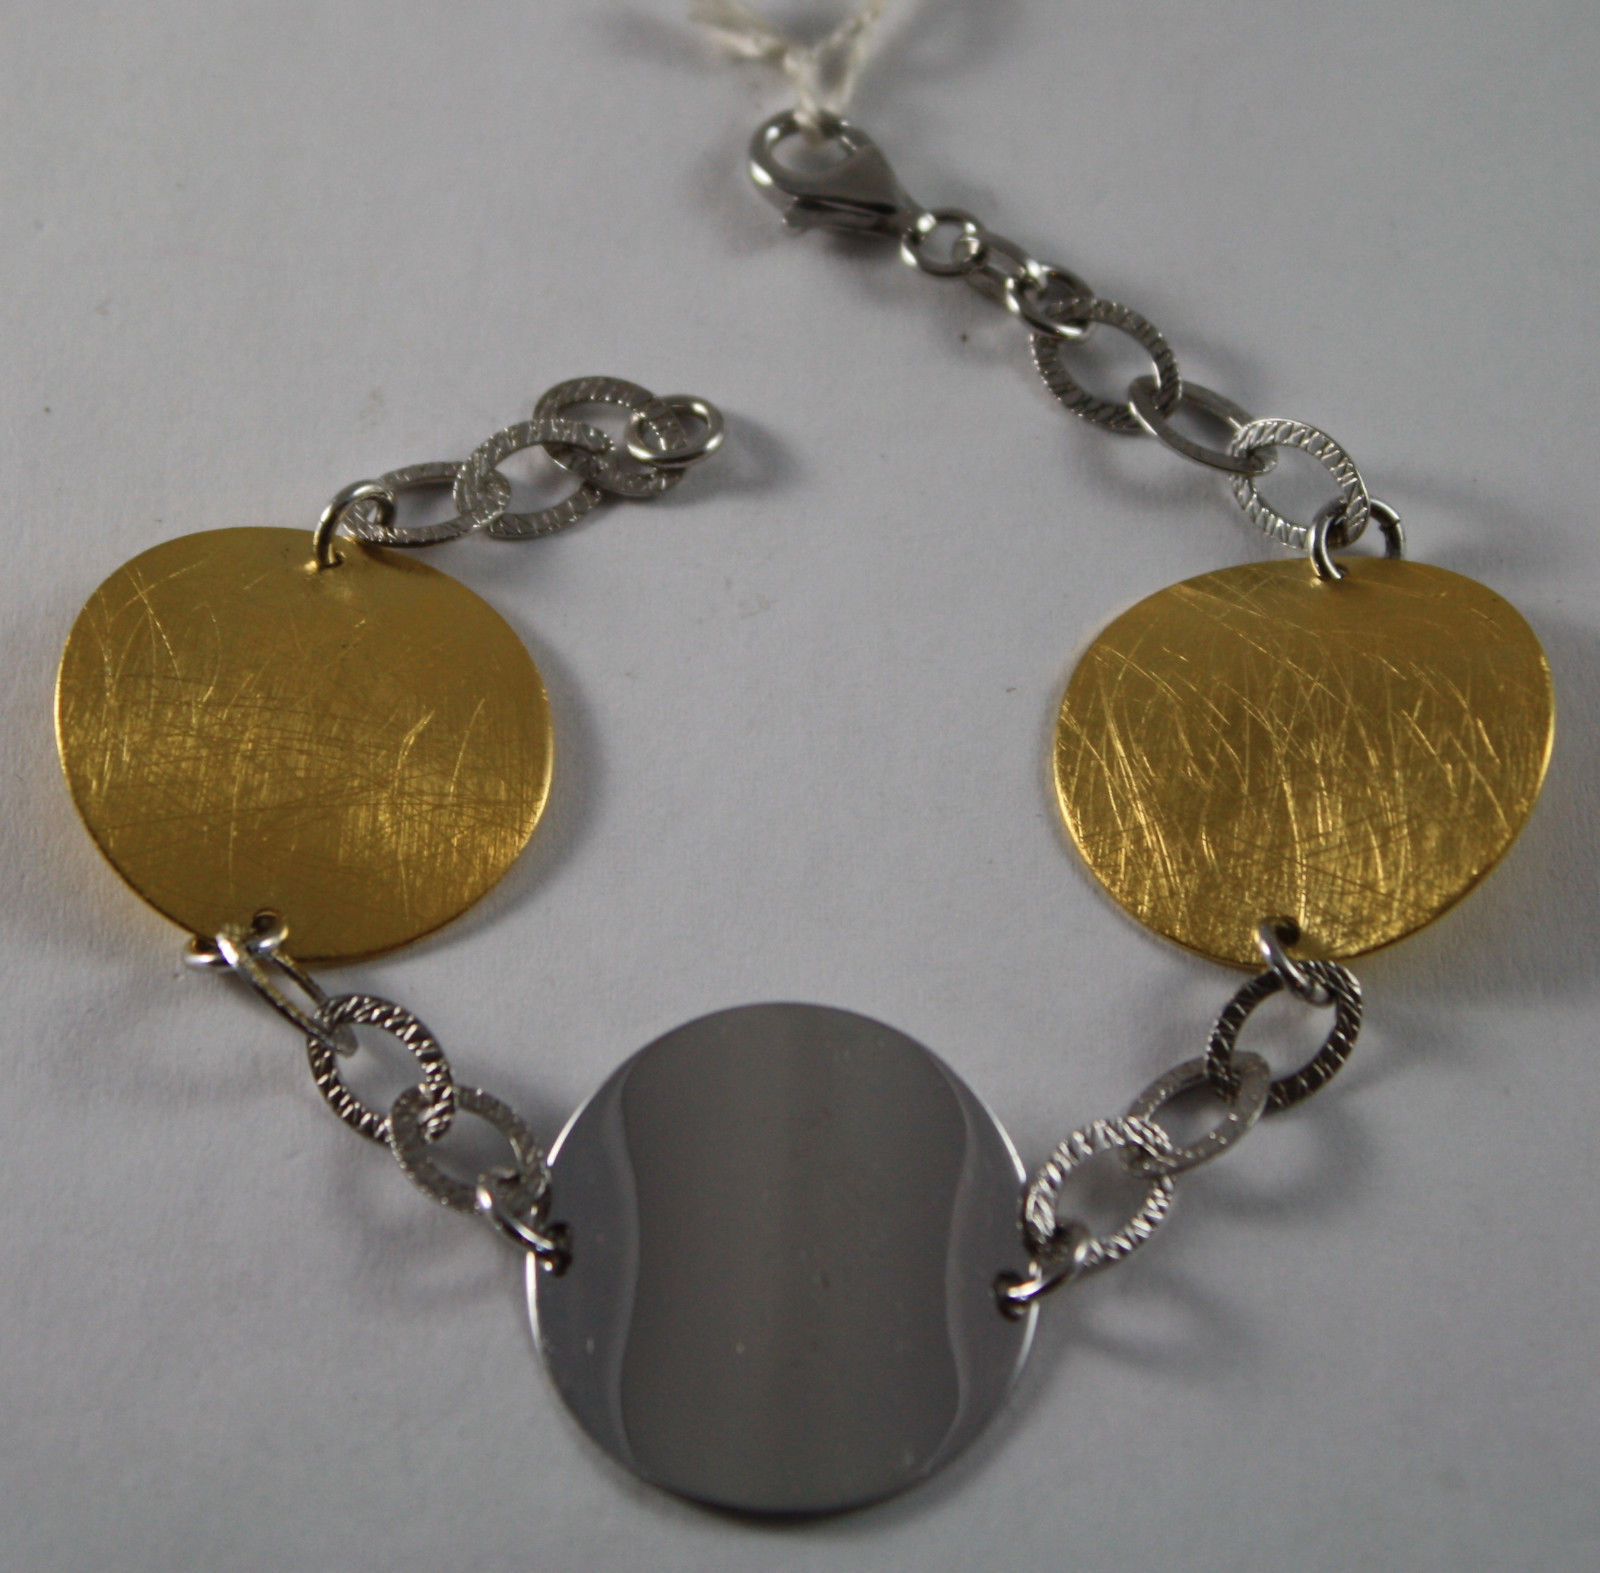 .925 RHODIUM SILVER AND YELLOW GOLD PLATED BRACELET WITH DISCS